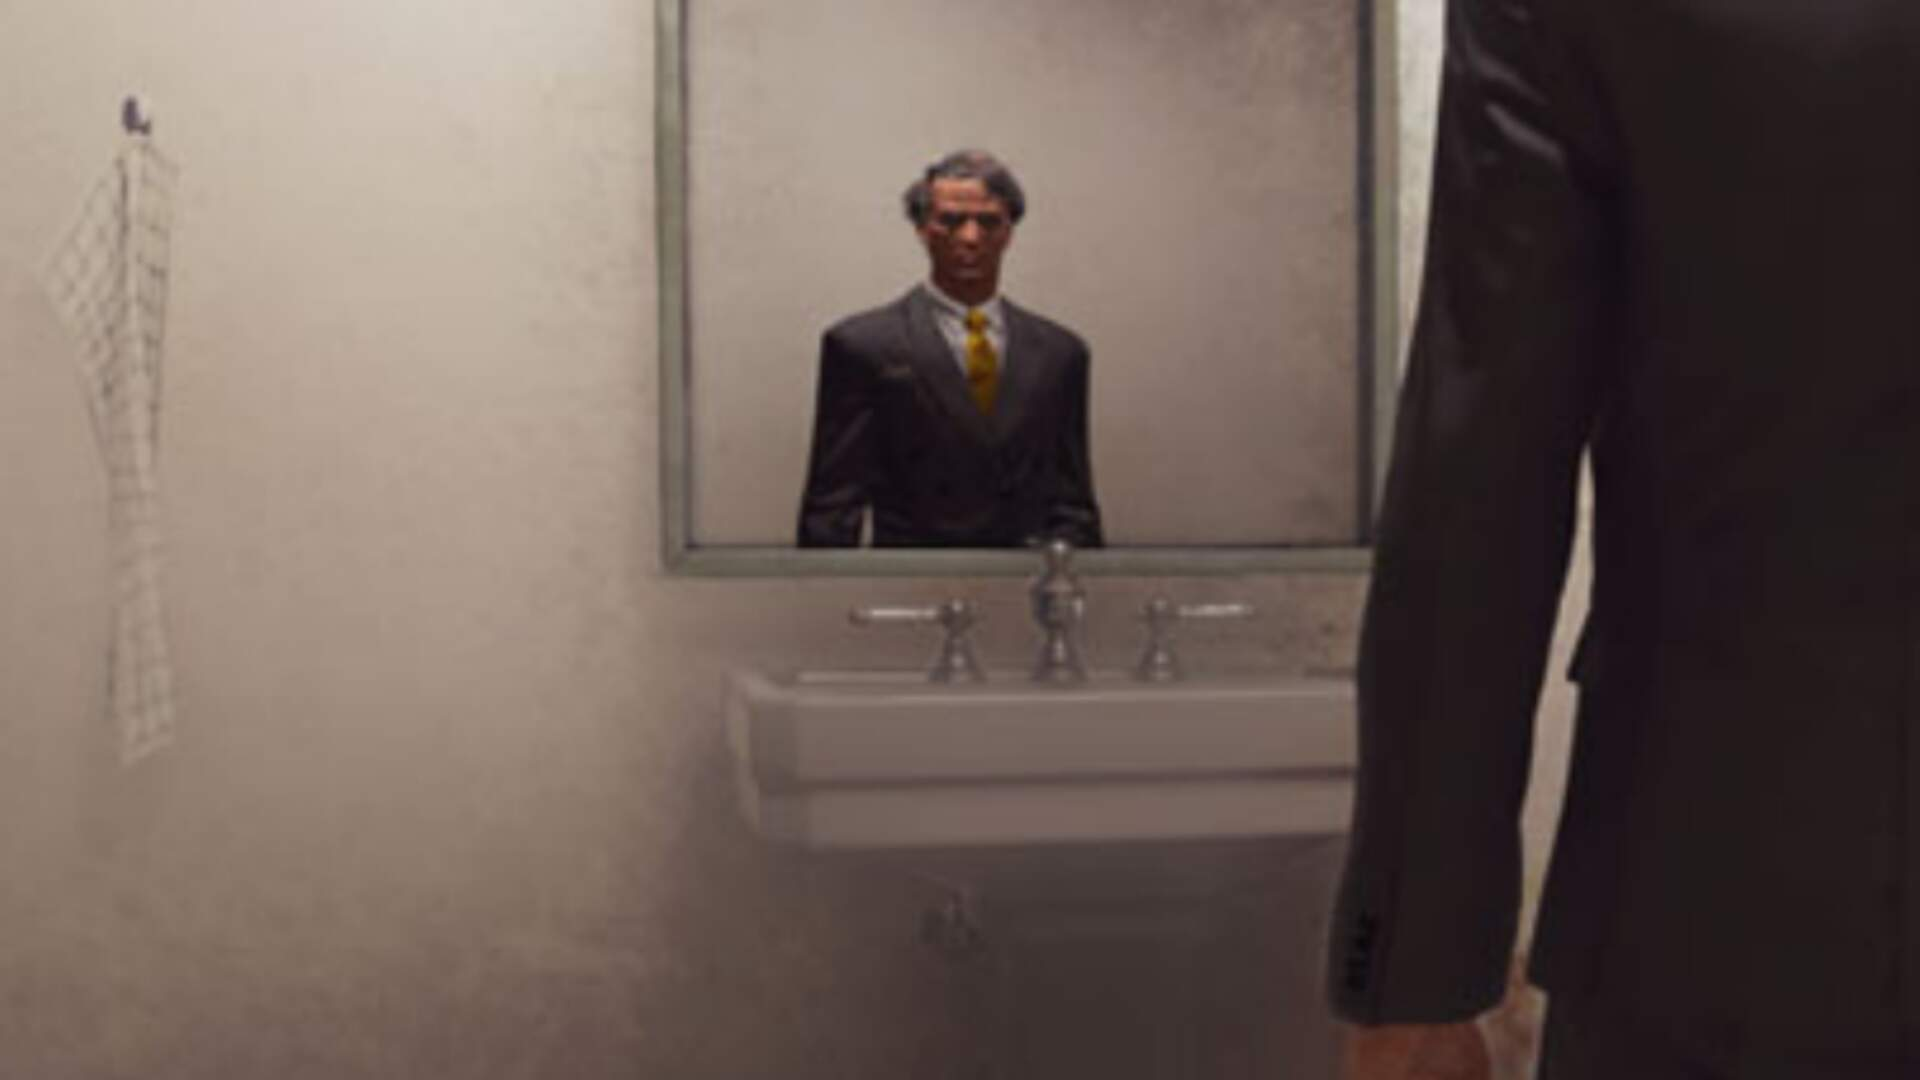 IO Interactive Puts Out More Targets and Other Updates for Hitman in June